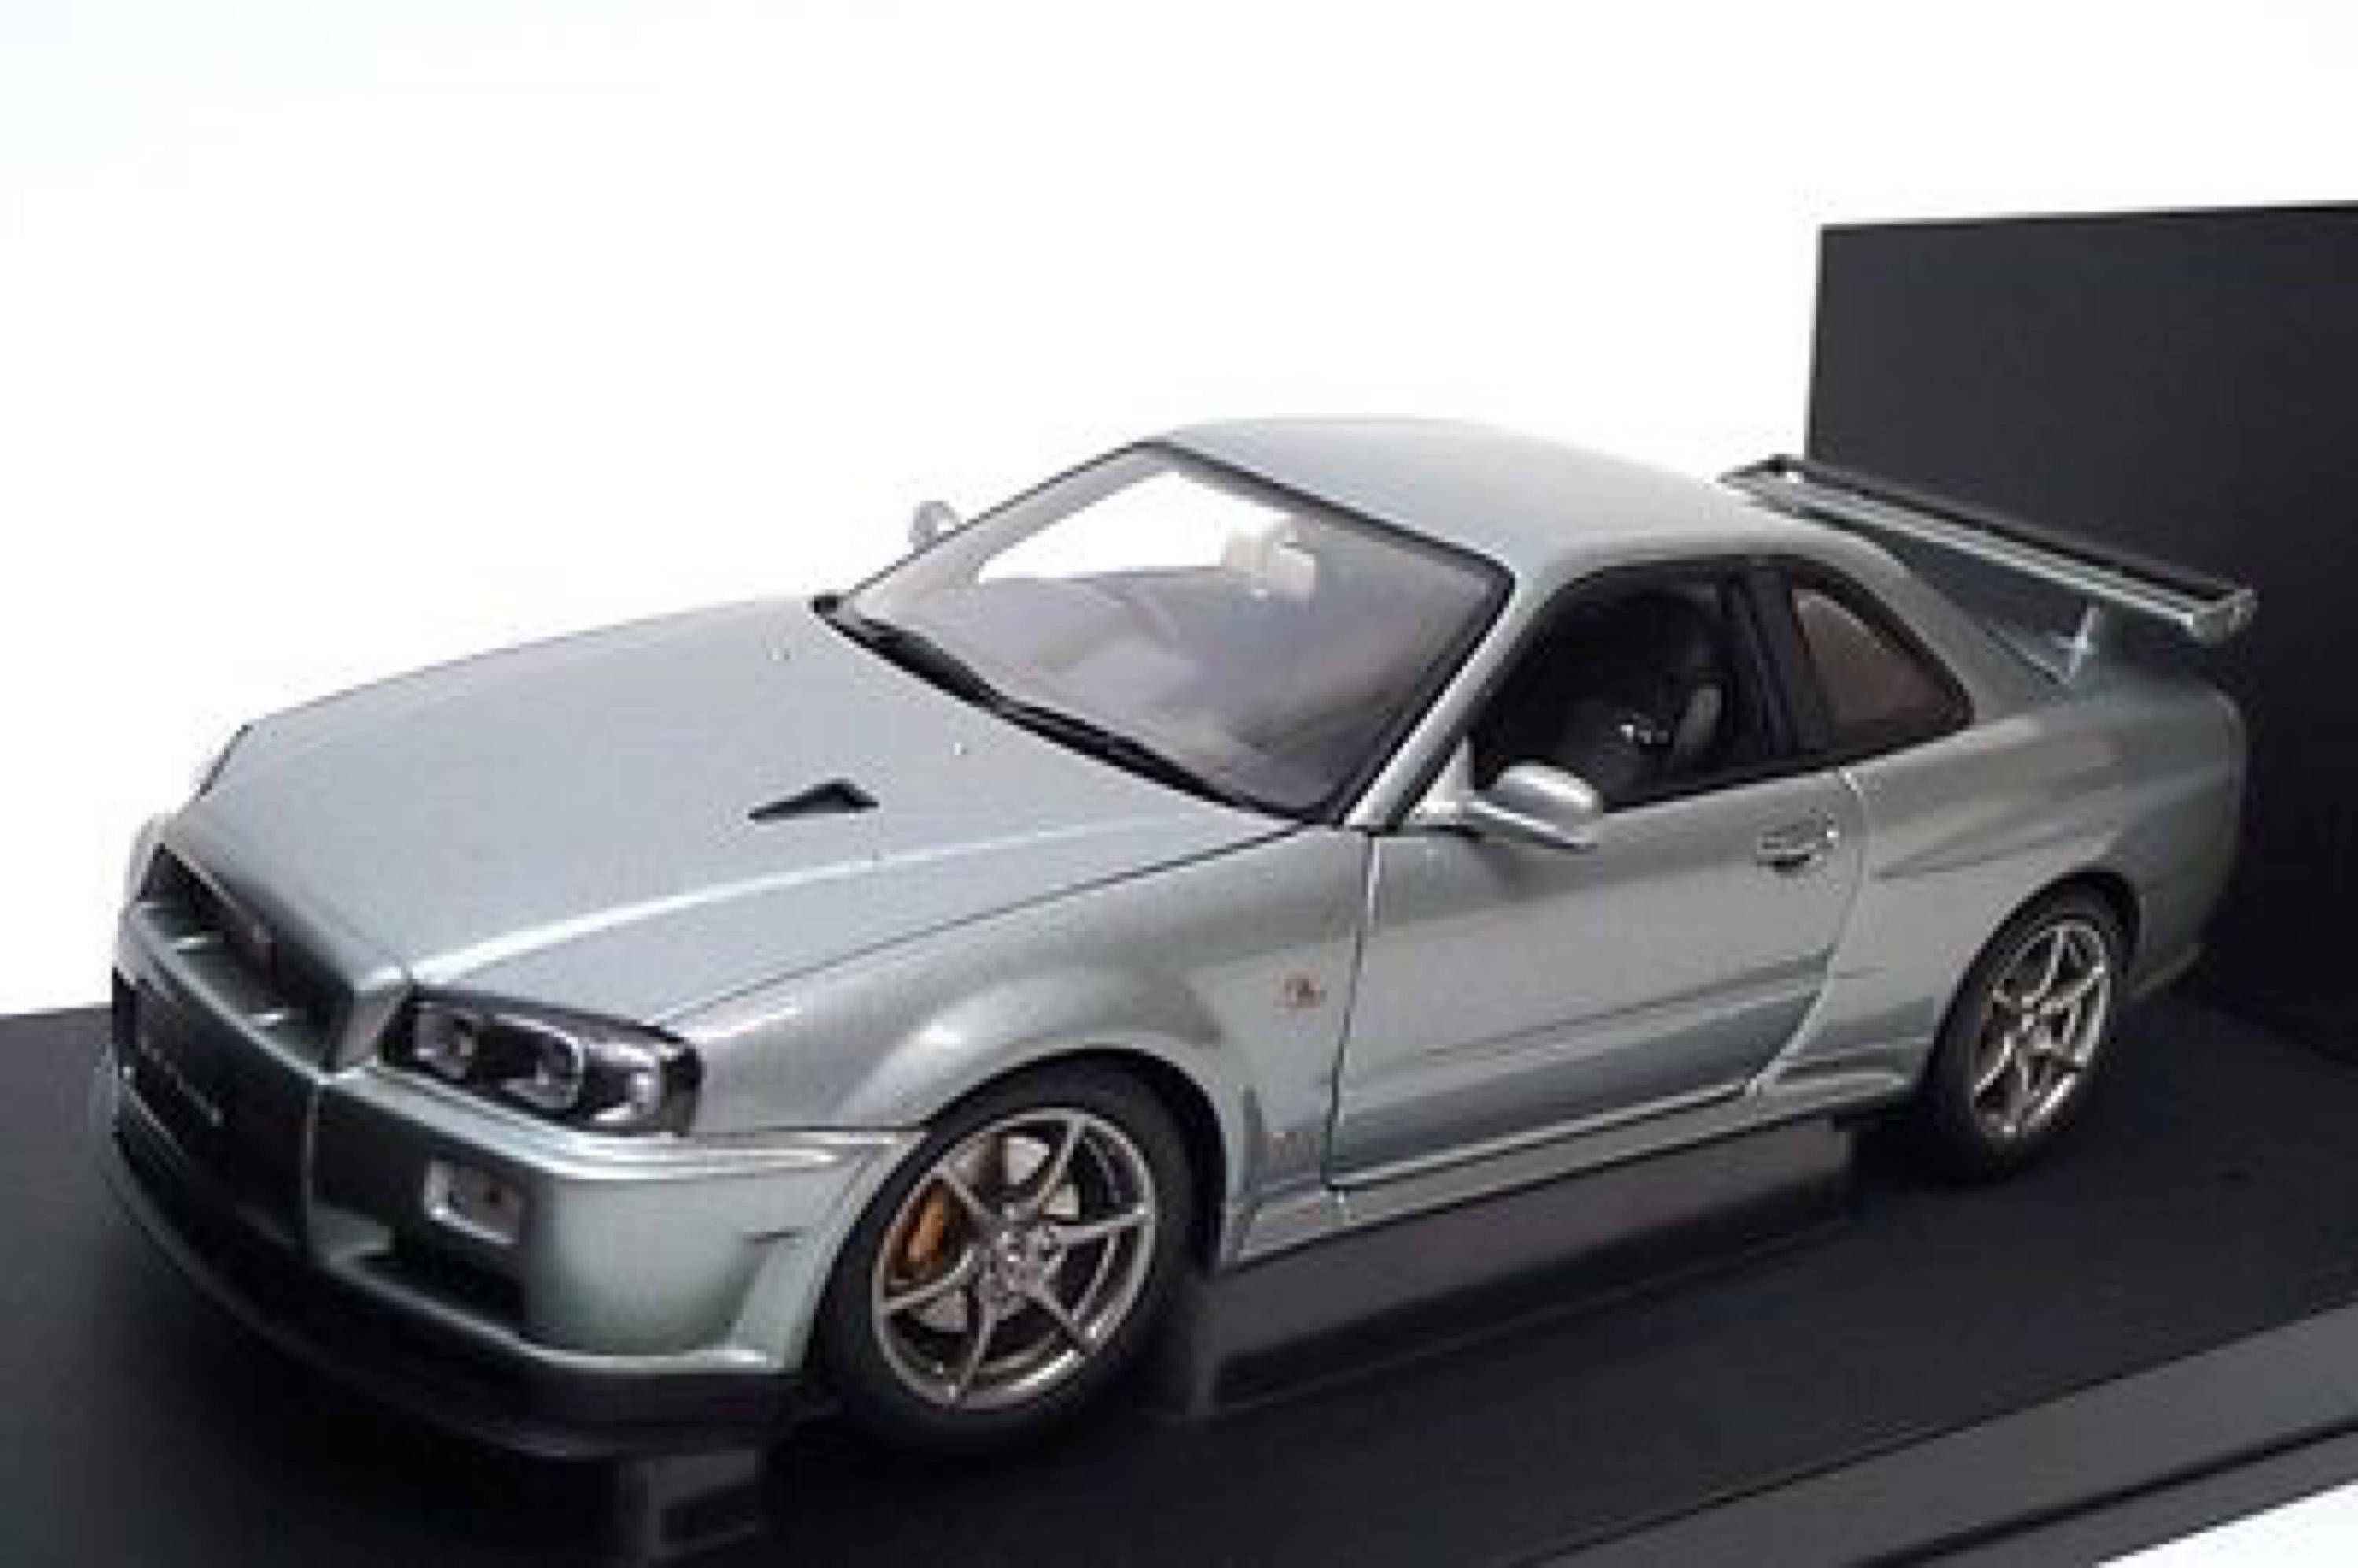 Autoart die cast model nissan skyline gtr r34 1 43 scale in silver barcode ean 0674110573022 http www comparestoreprices co uk cars and ot